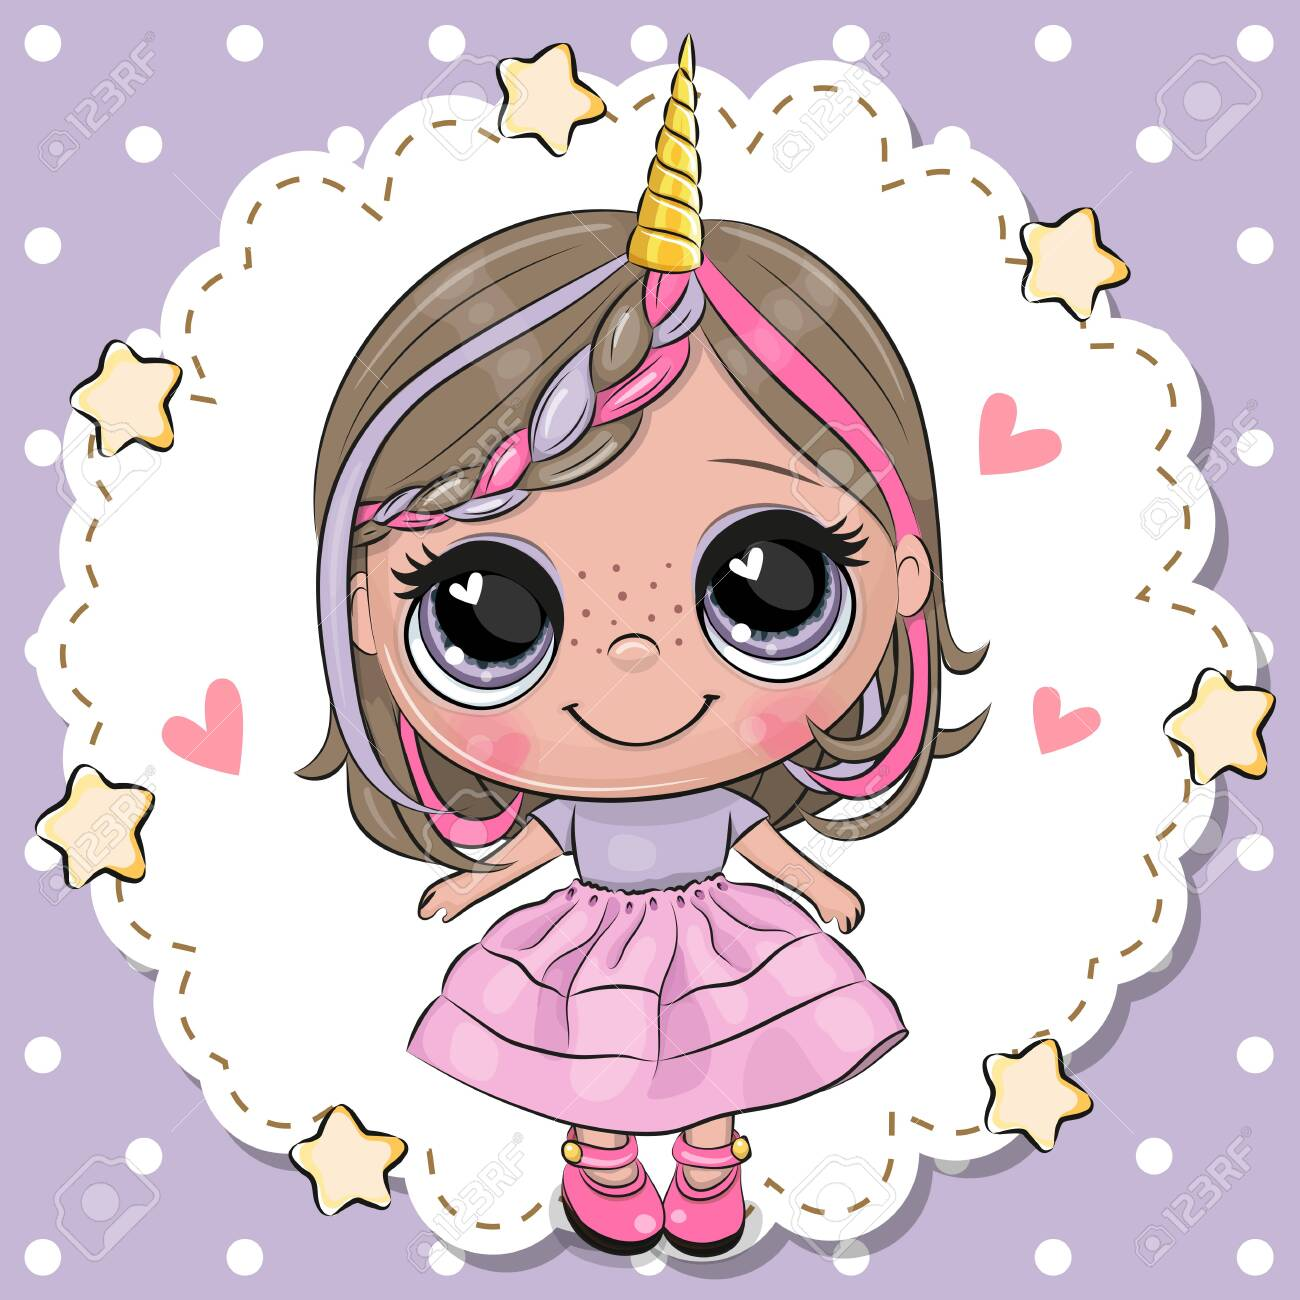 Animated Skirt cute cartoon unicorn girl with horn in a pink skirt